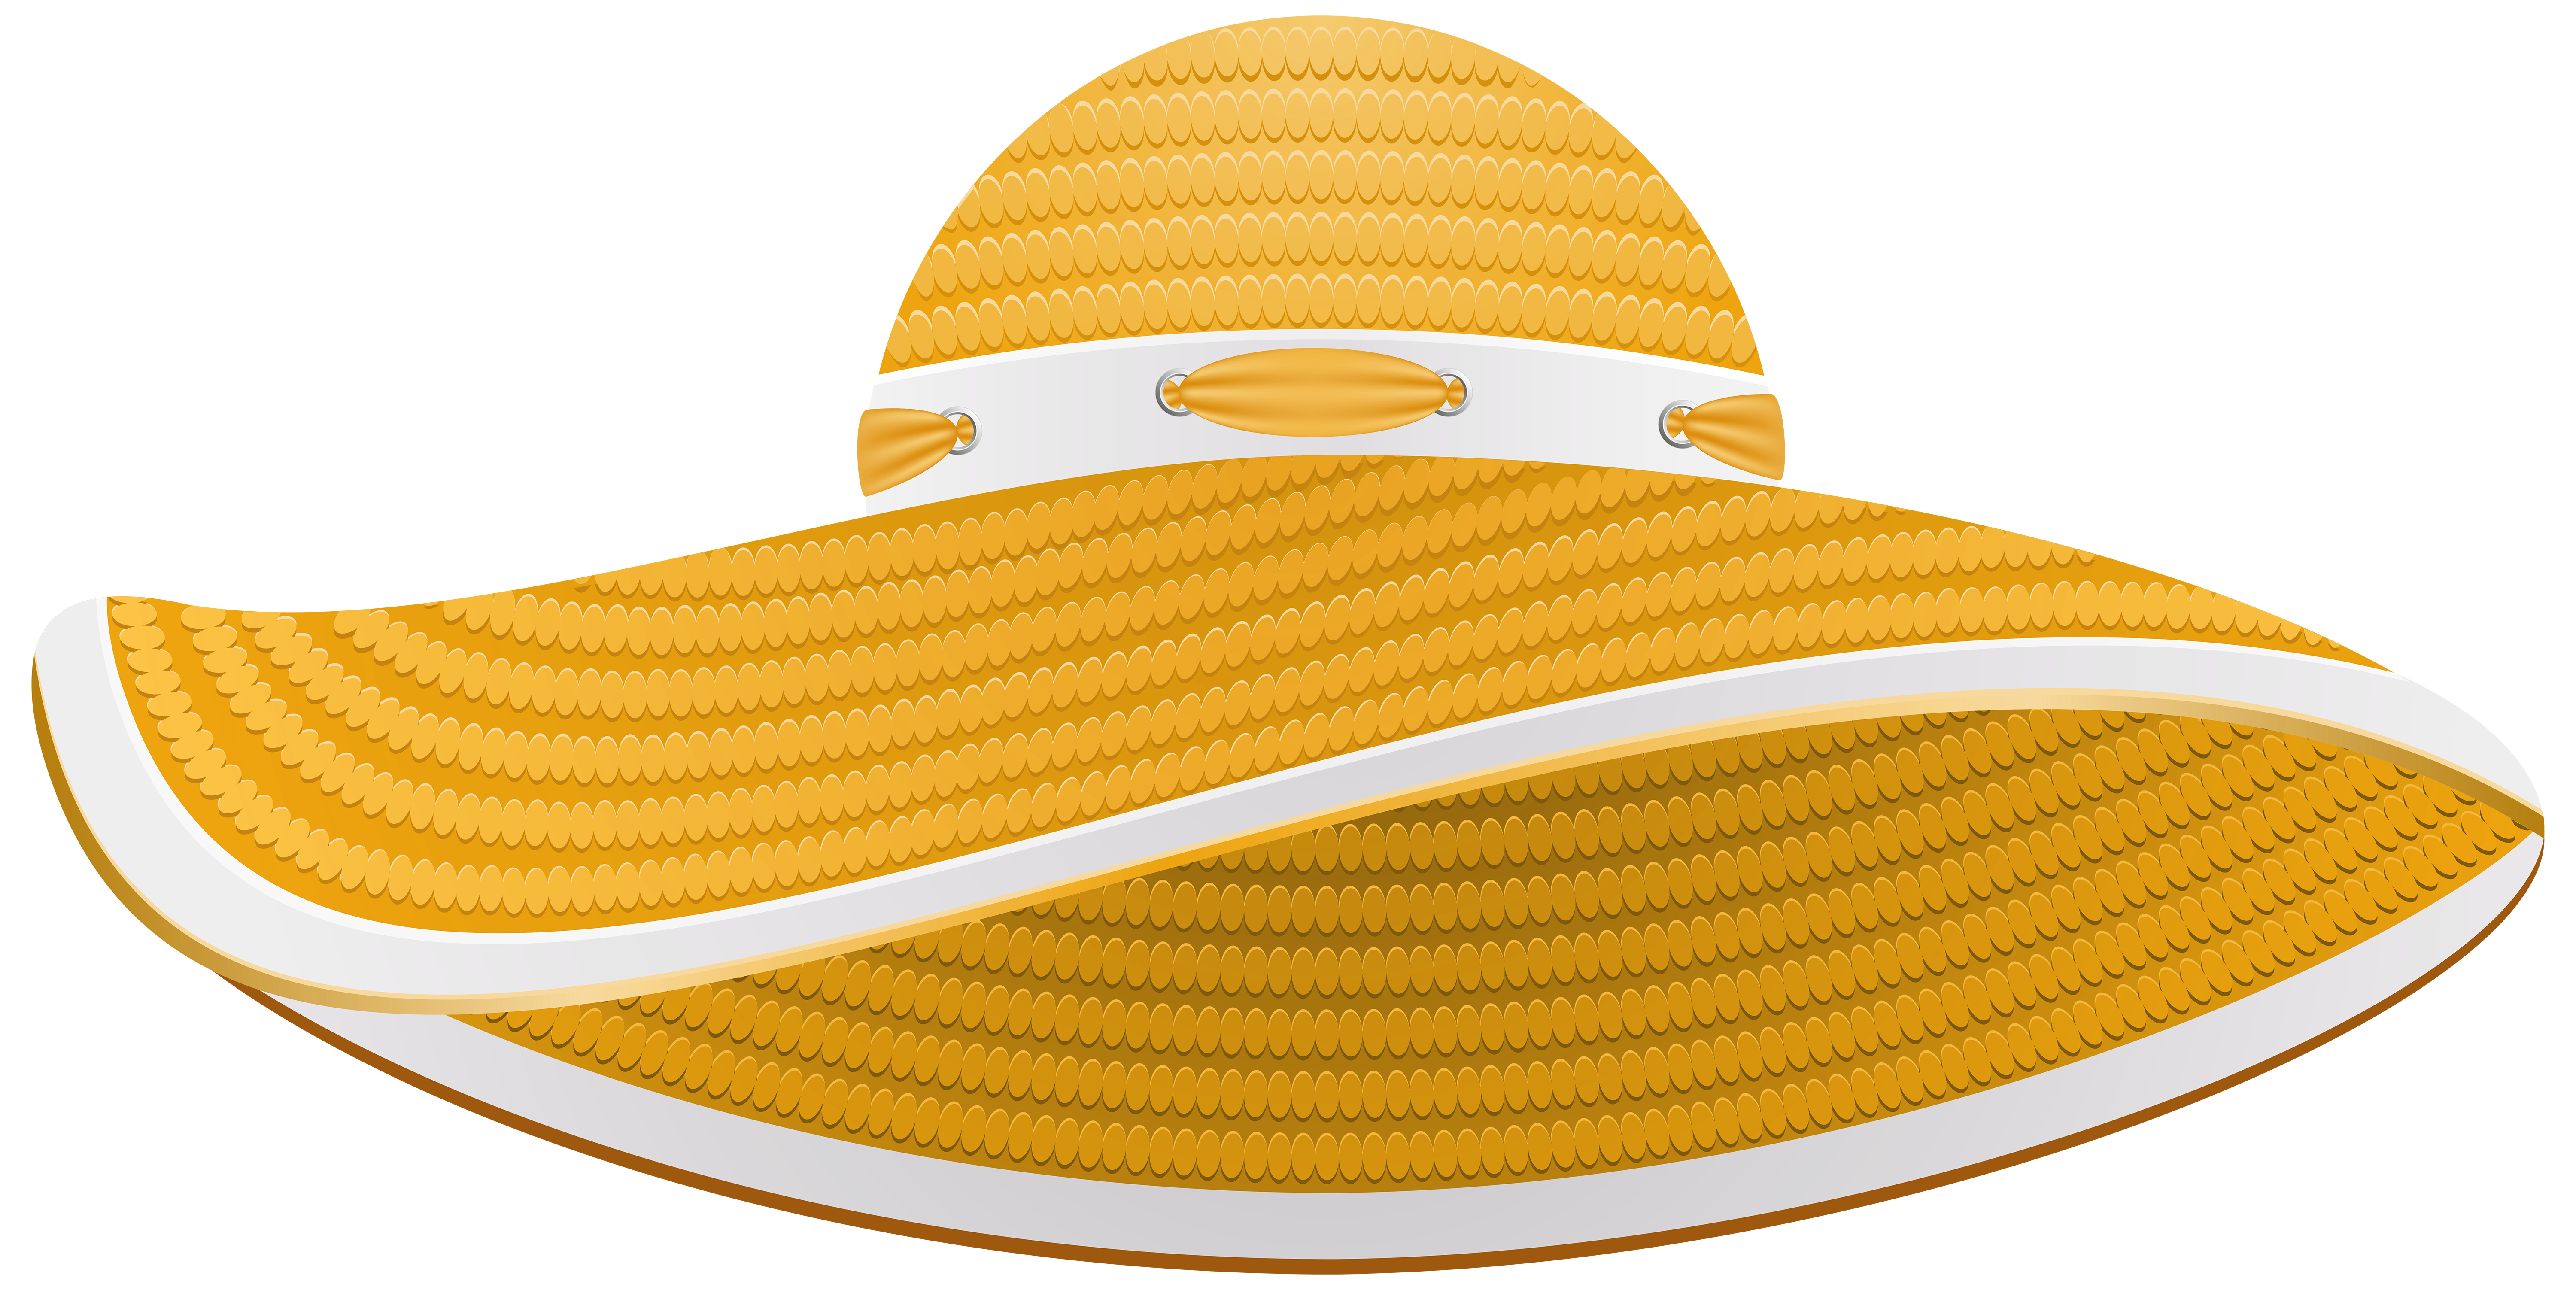 Summer hat png. Yellow female transparent clip